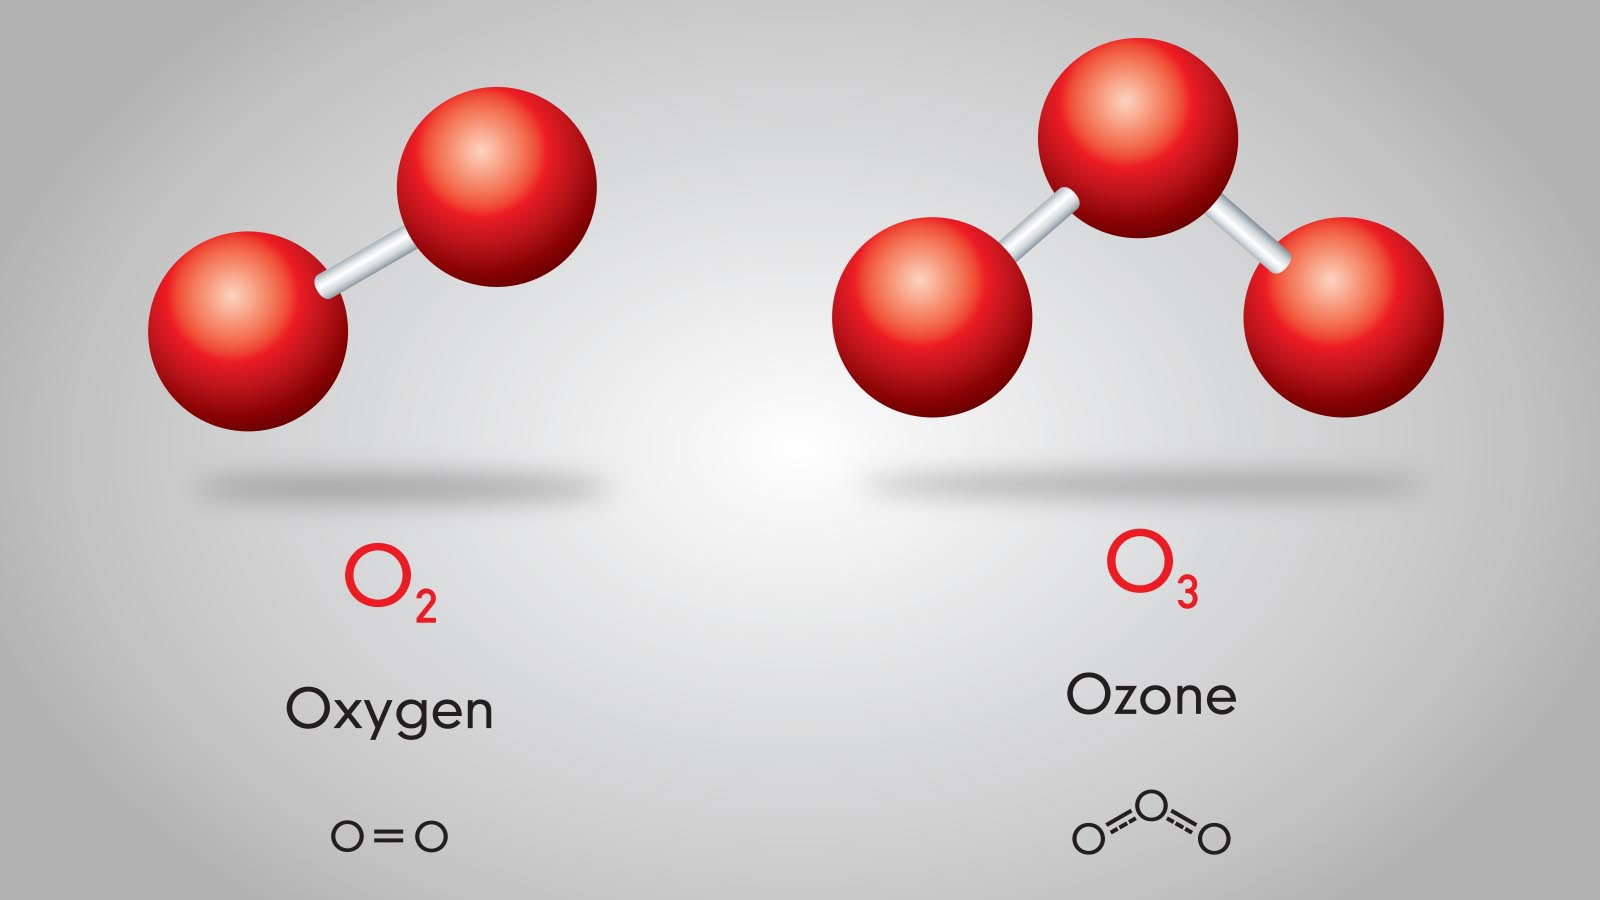 Oxygen and Ozone molecules